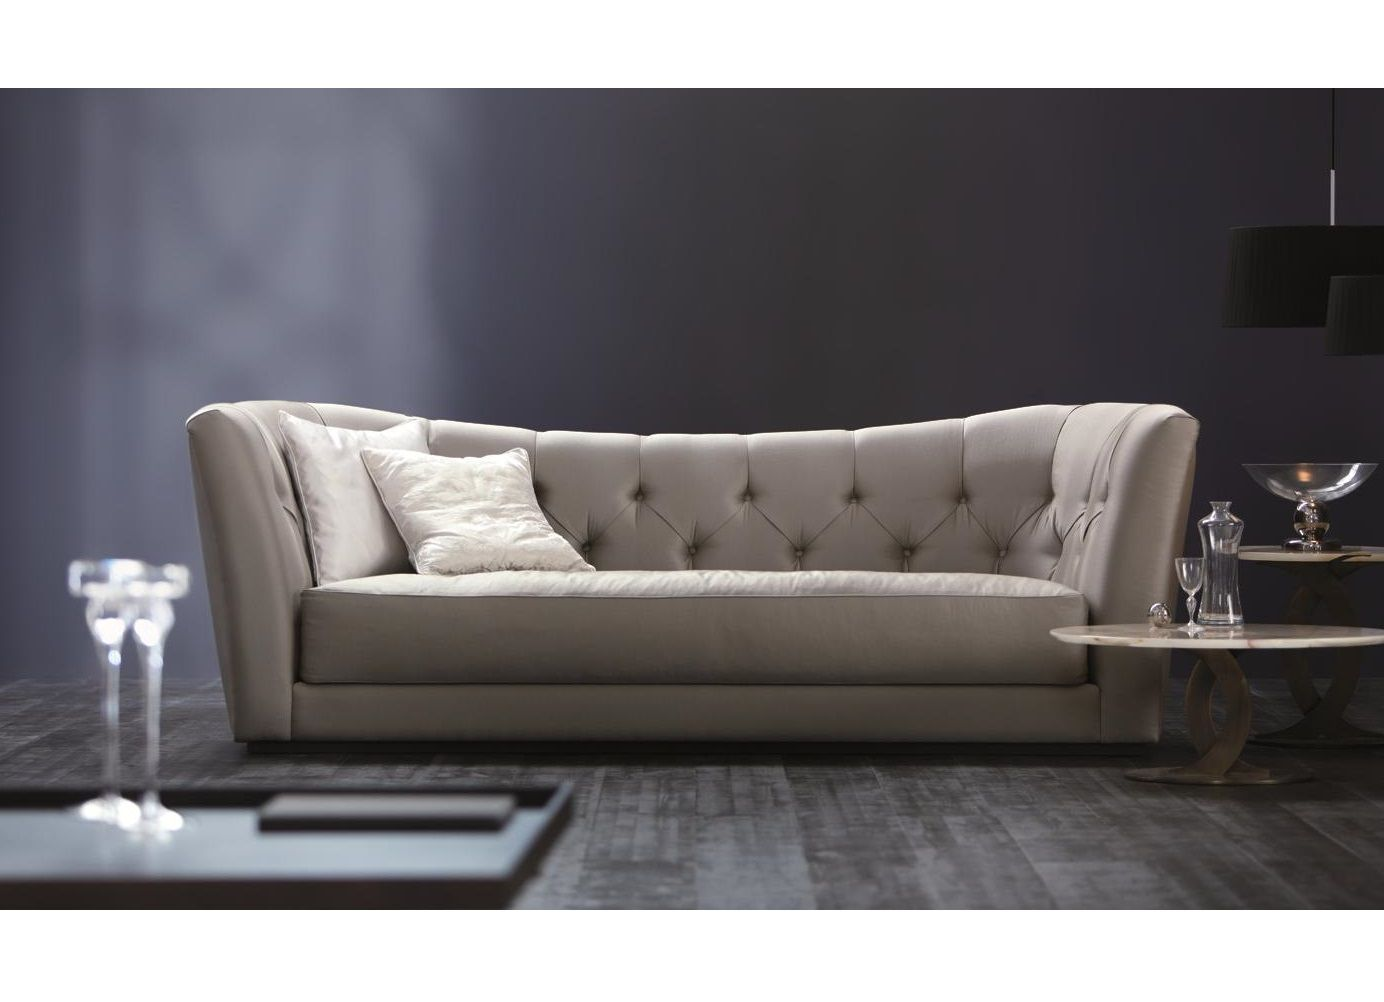 Butterfly 3 Seater Sofa Contemporary Sofa Design Living Room